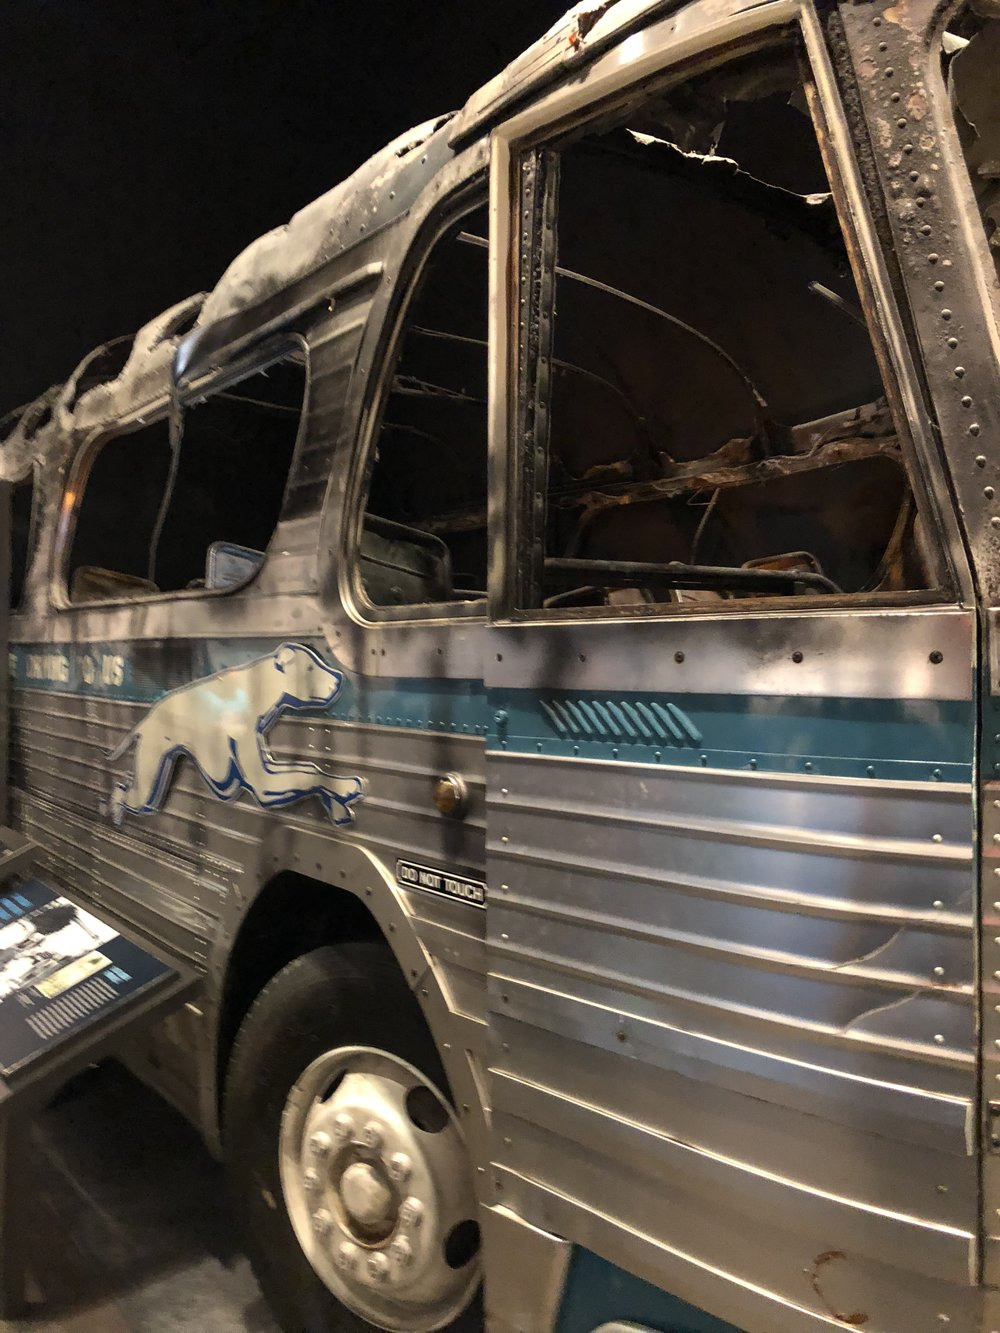 The actual bus that got burned during the Civil Rights Movement as part of the bus boycott